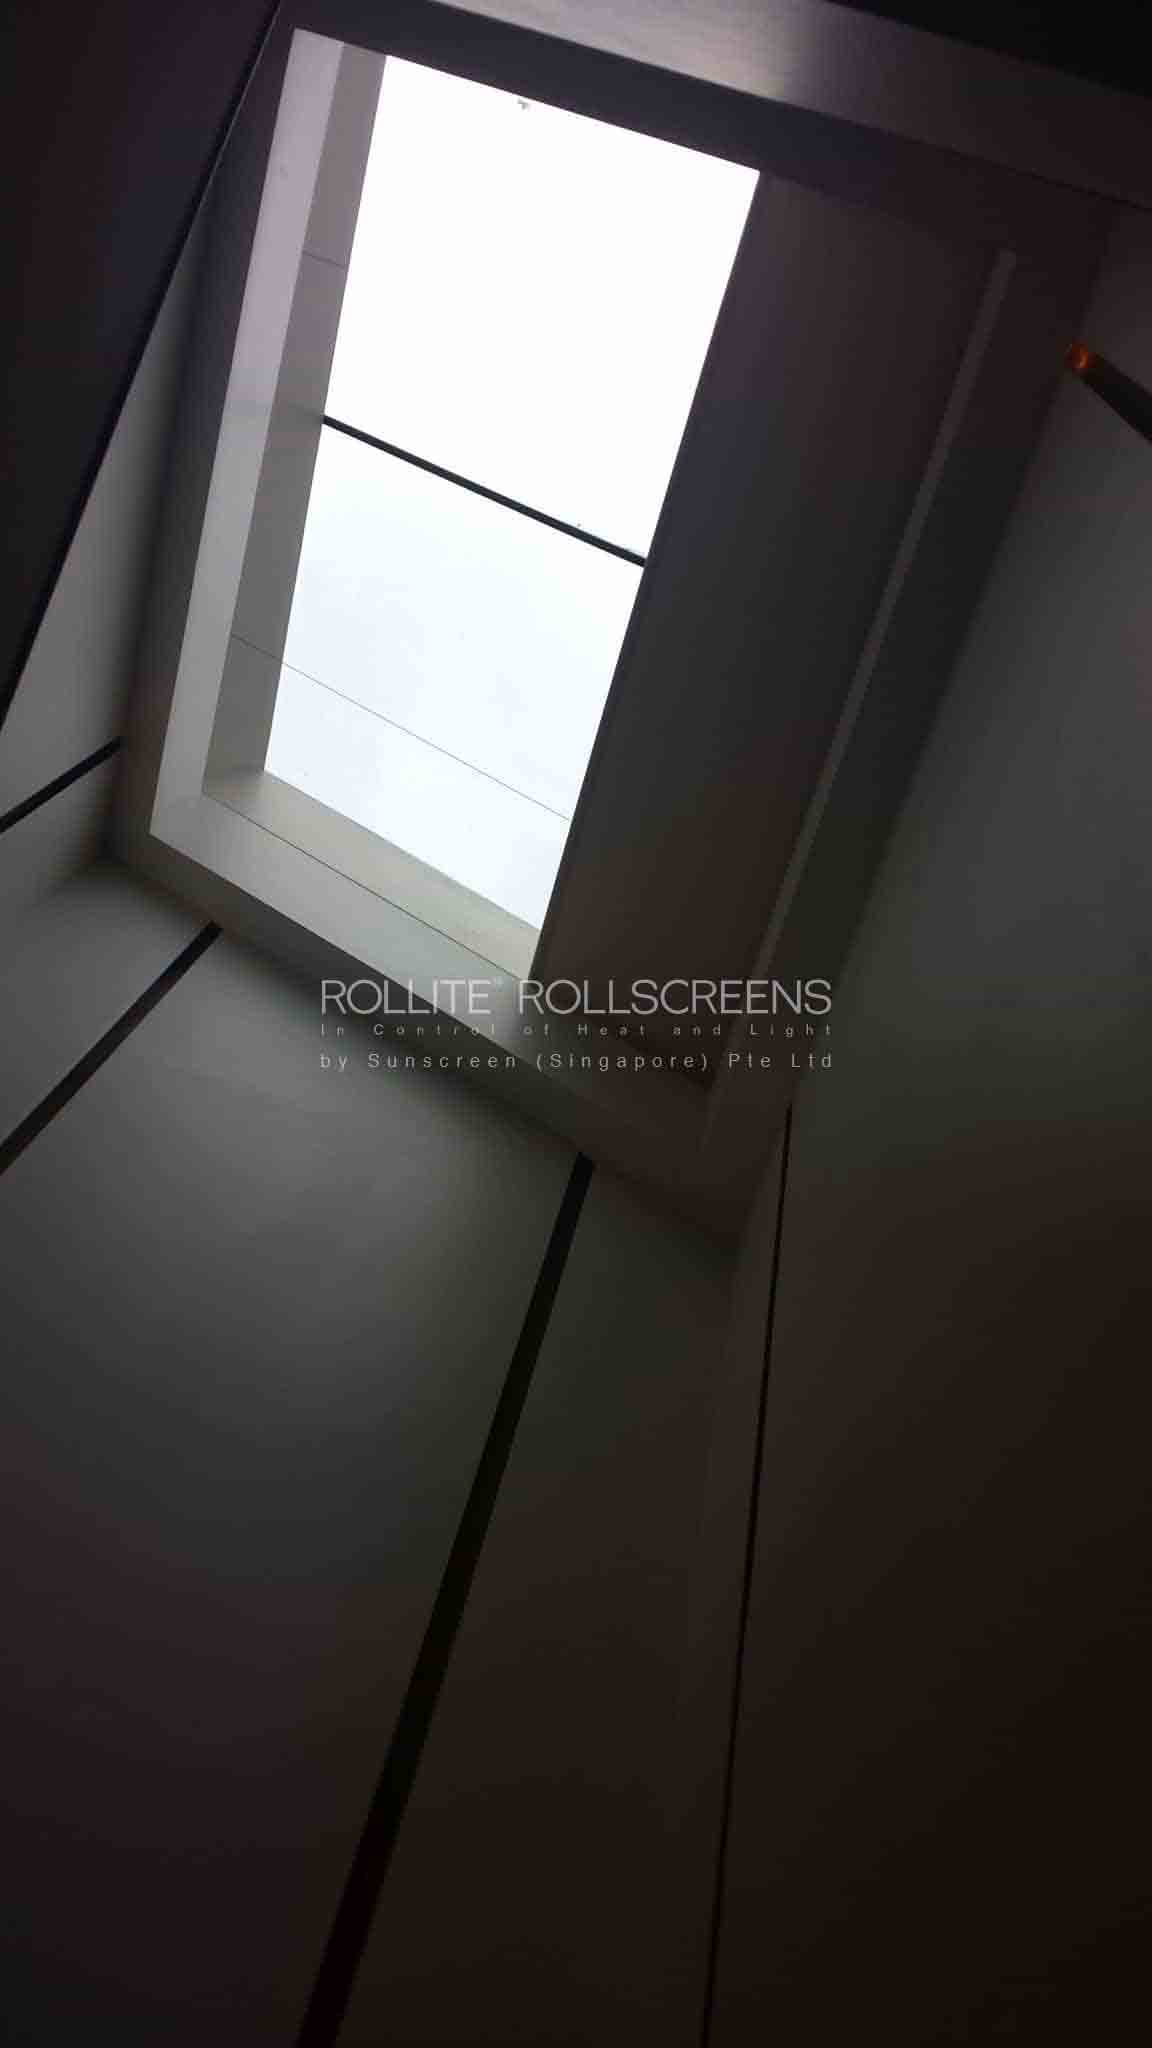 Sunscreen-Singapore_Rollite-Skylight-16